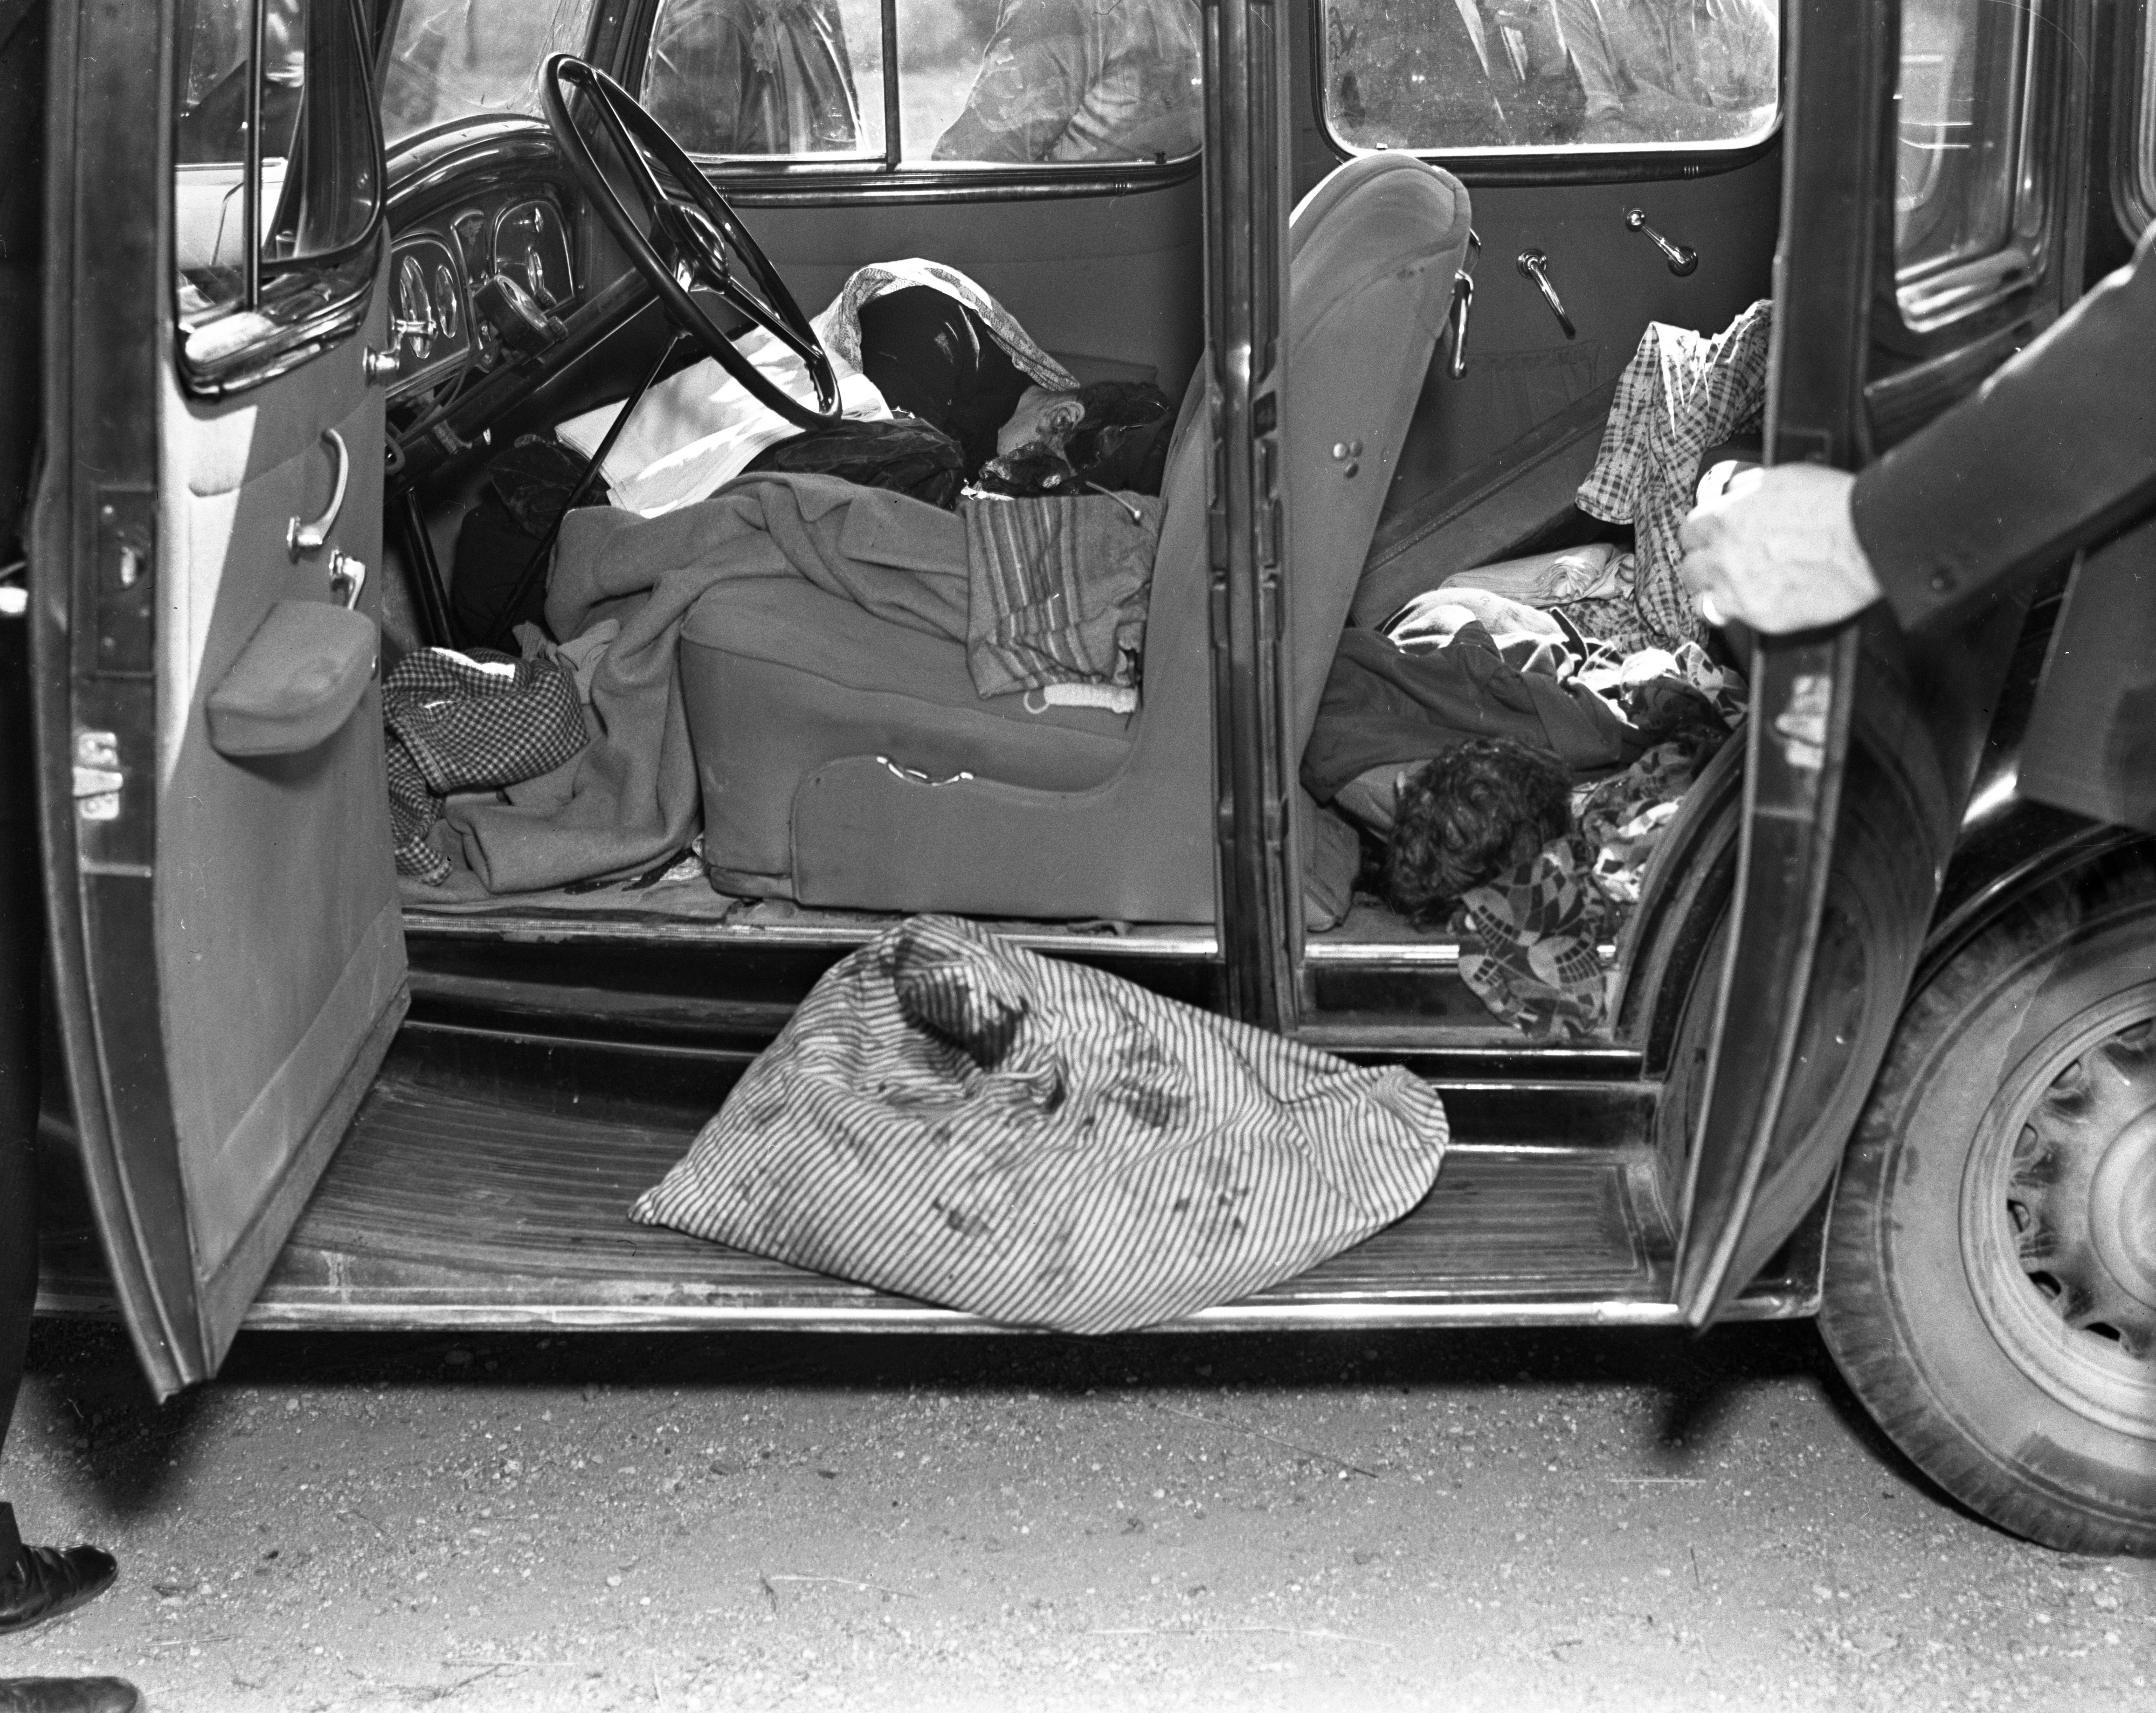 Abandoned Car in Ruth McHenry Murders, October 1, 1937 image